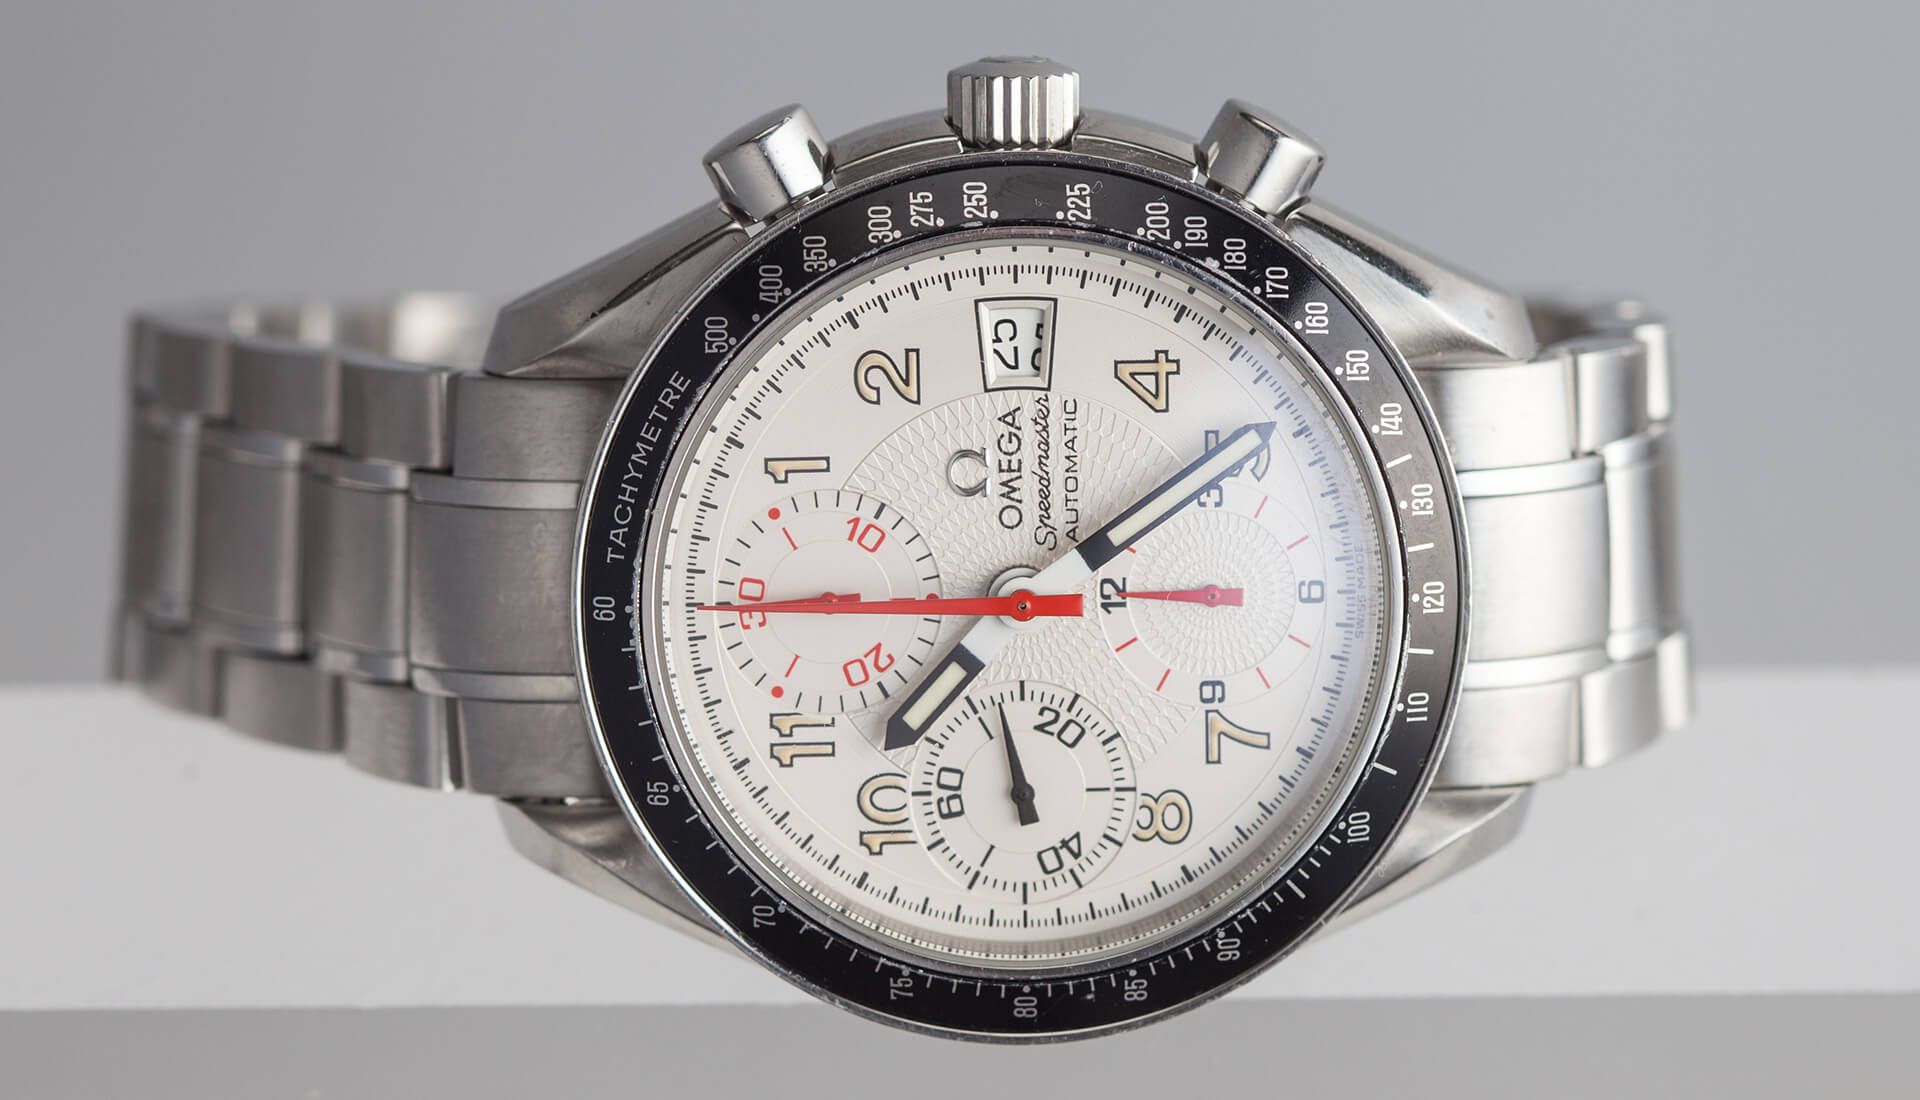 In The Metal: Vintage Omega Value Props?